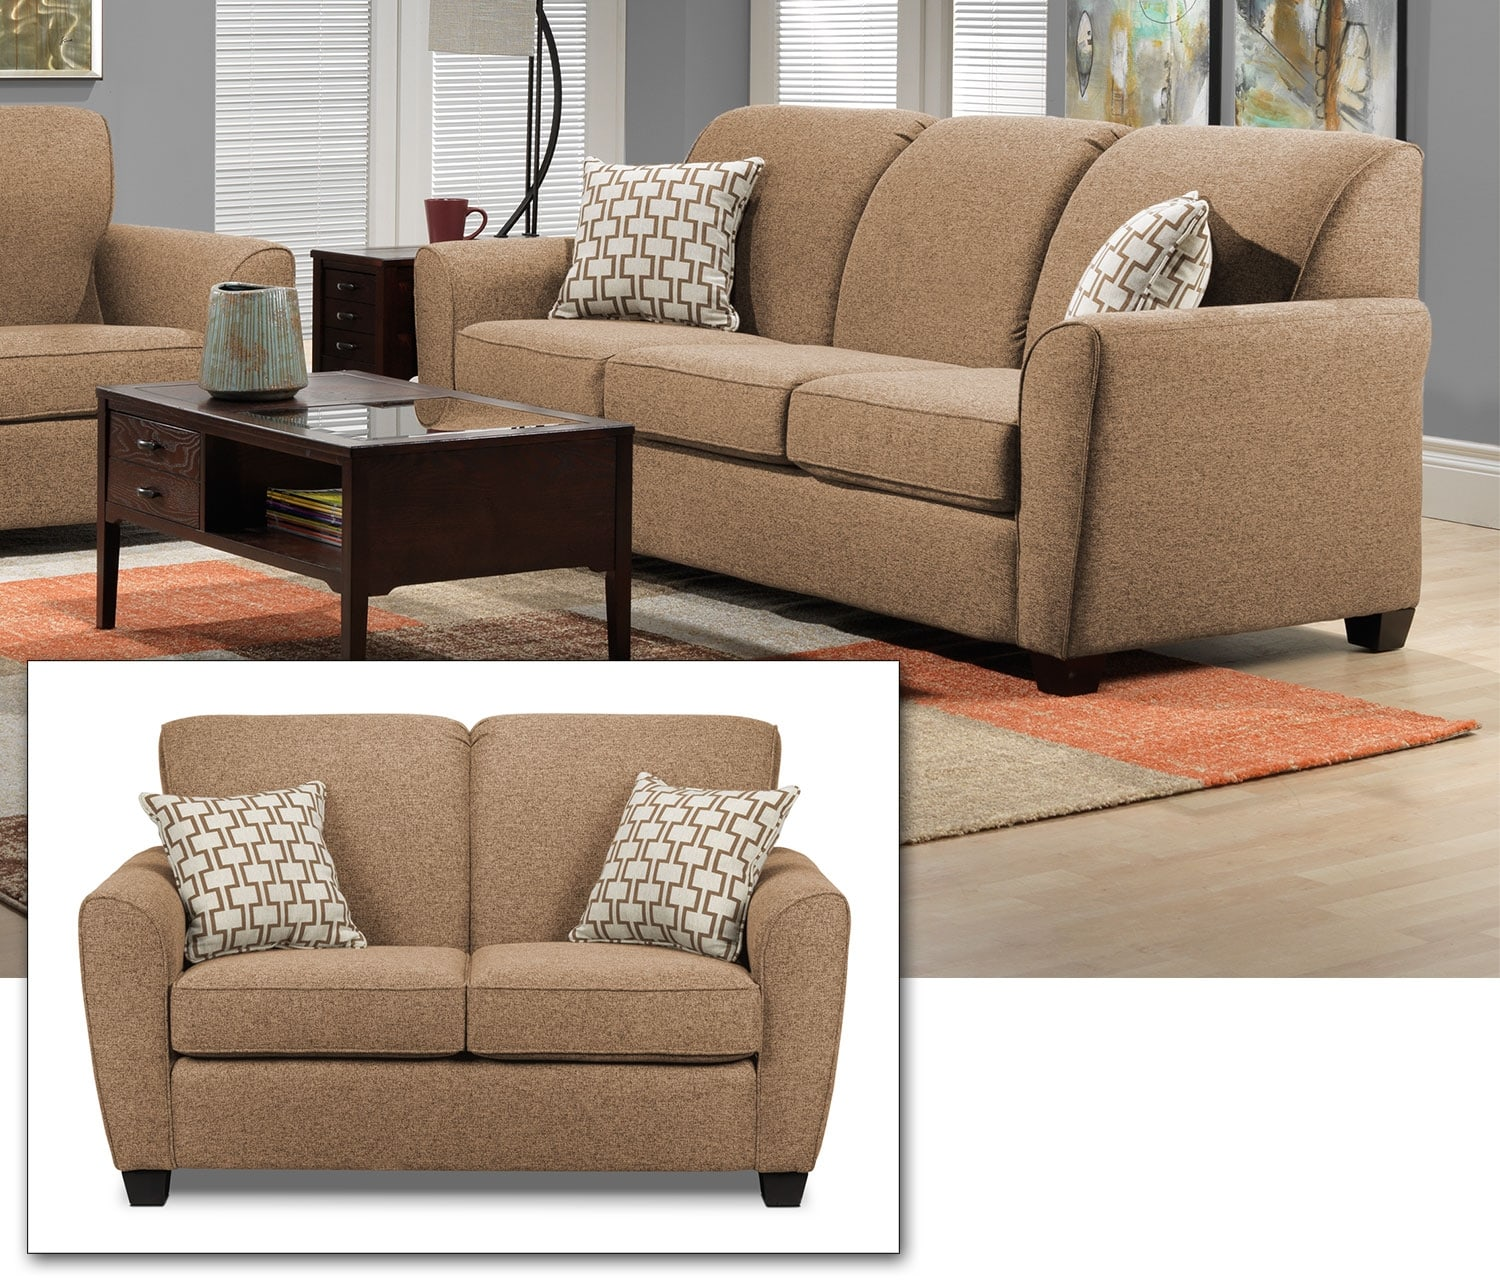 Ashby 2 Pc. Living Room Package w/ Loveseat - Sand